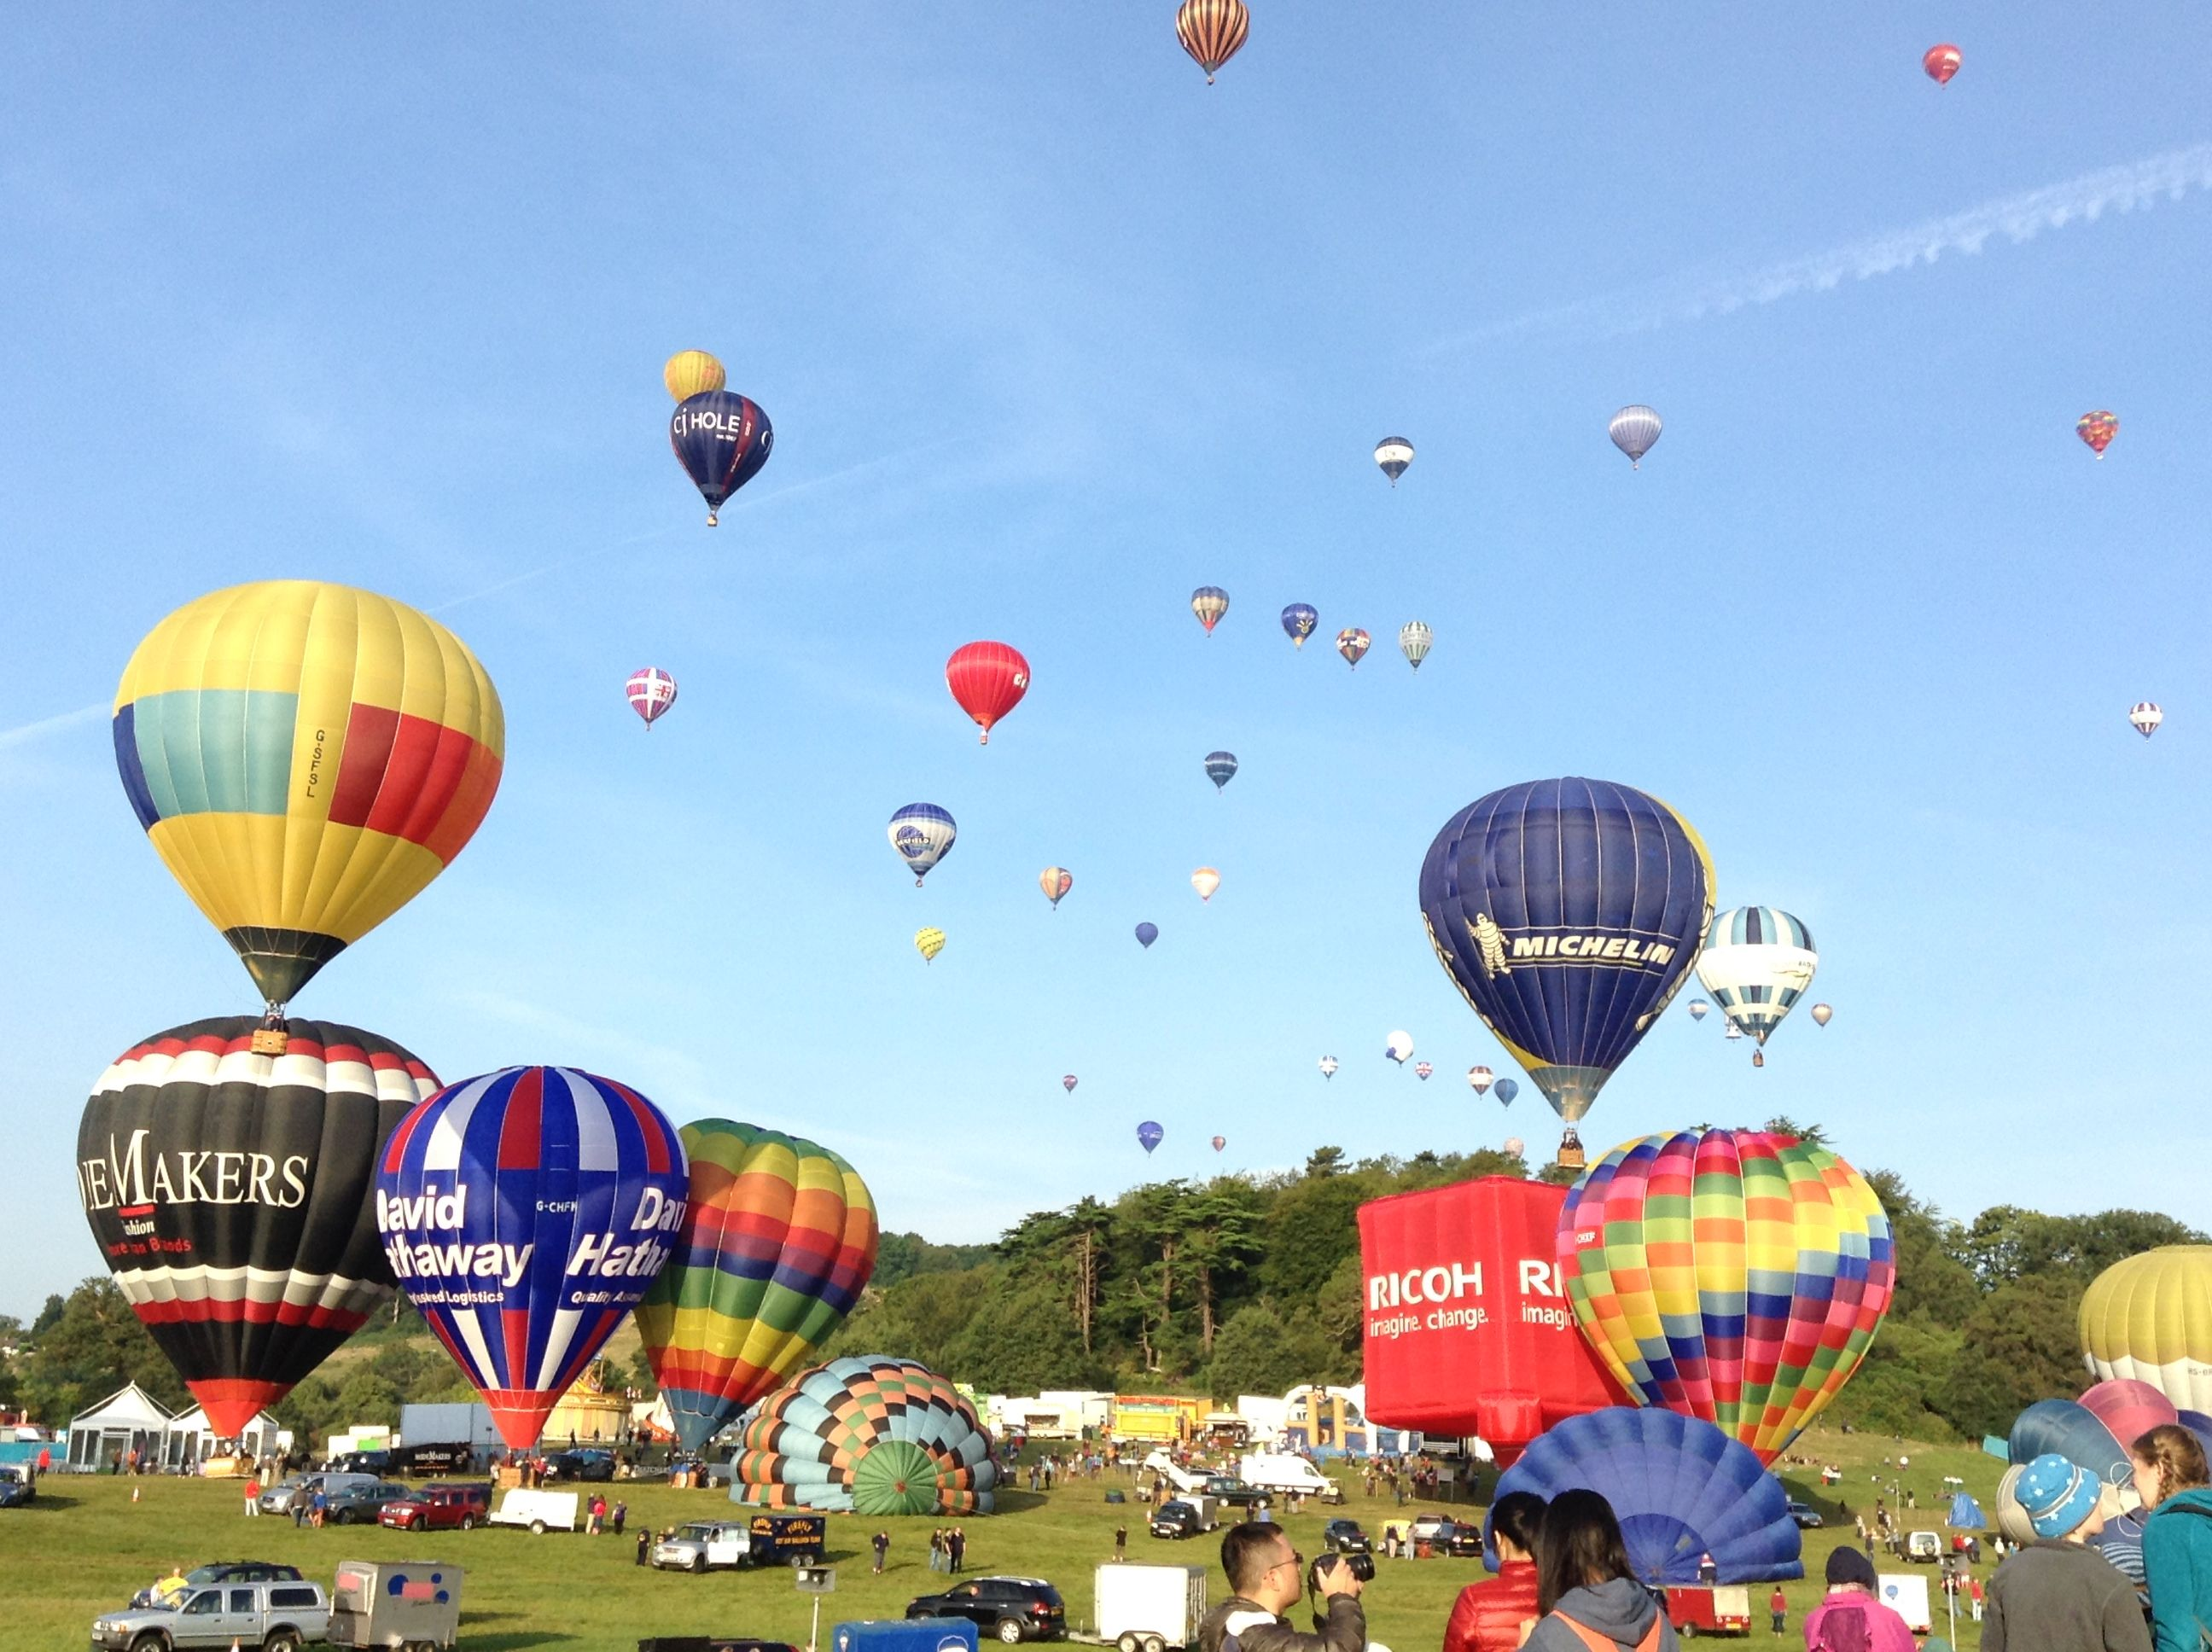 Hot air balloons Bristol balloon festival 2014 Bristol